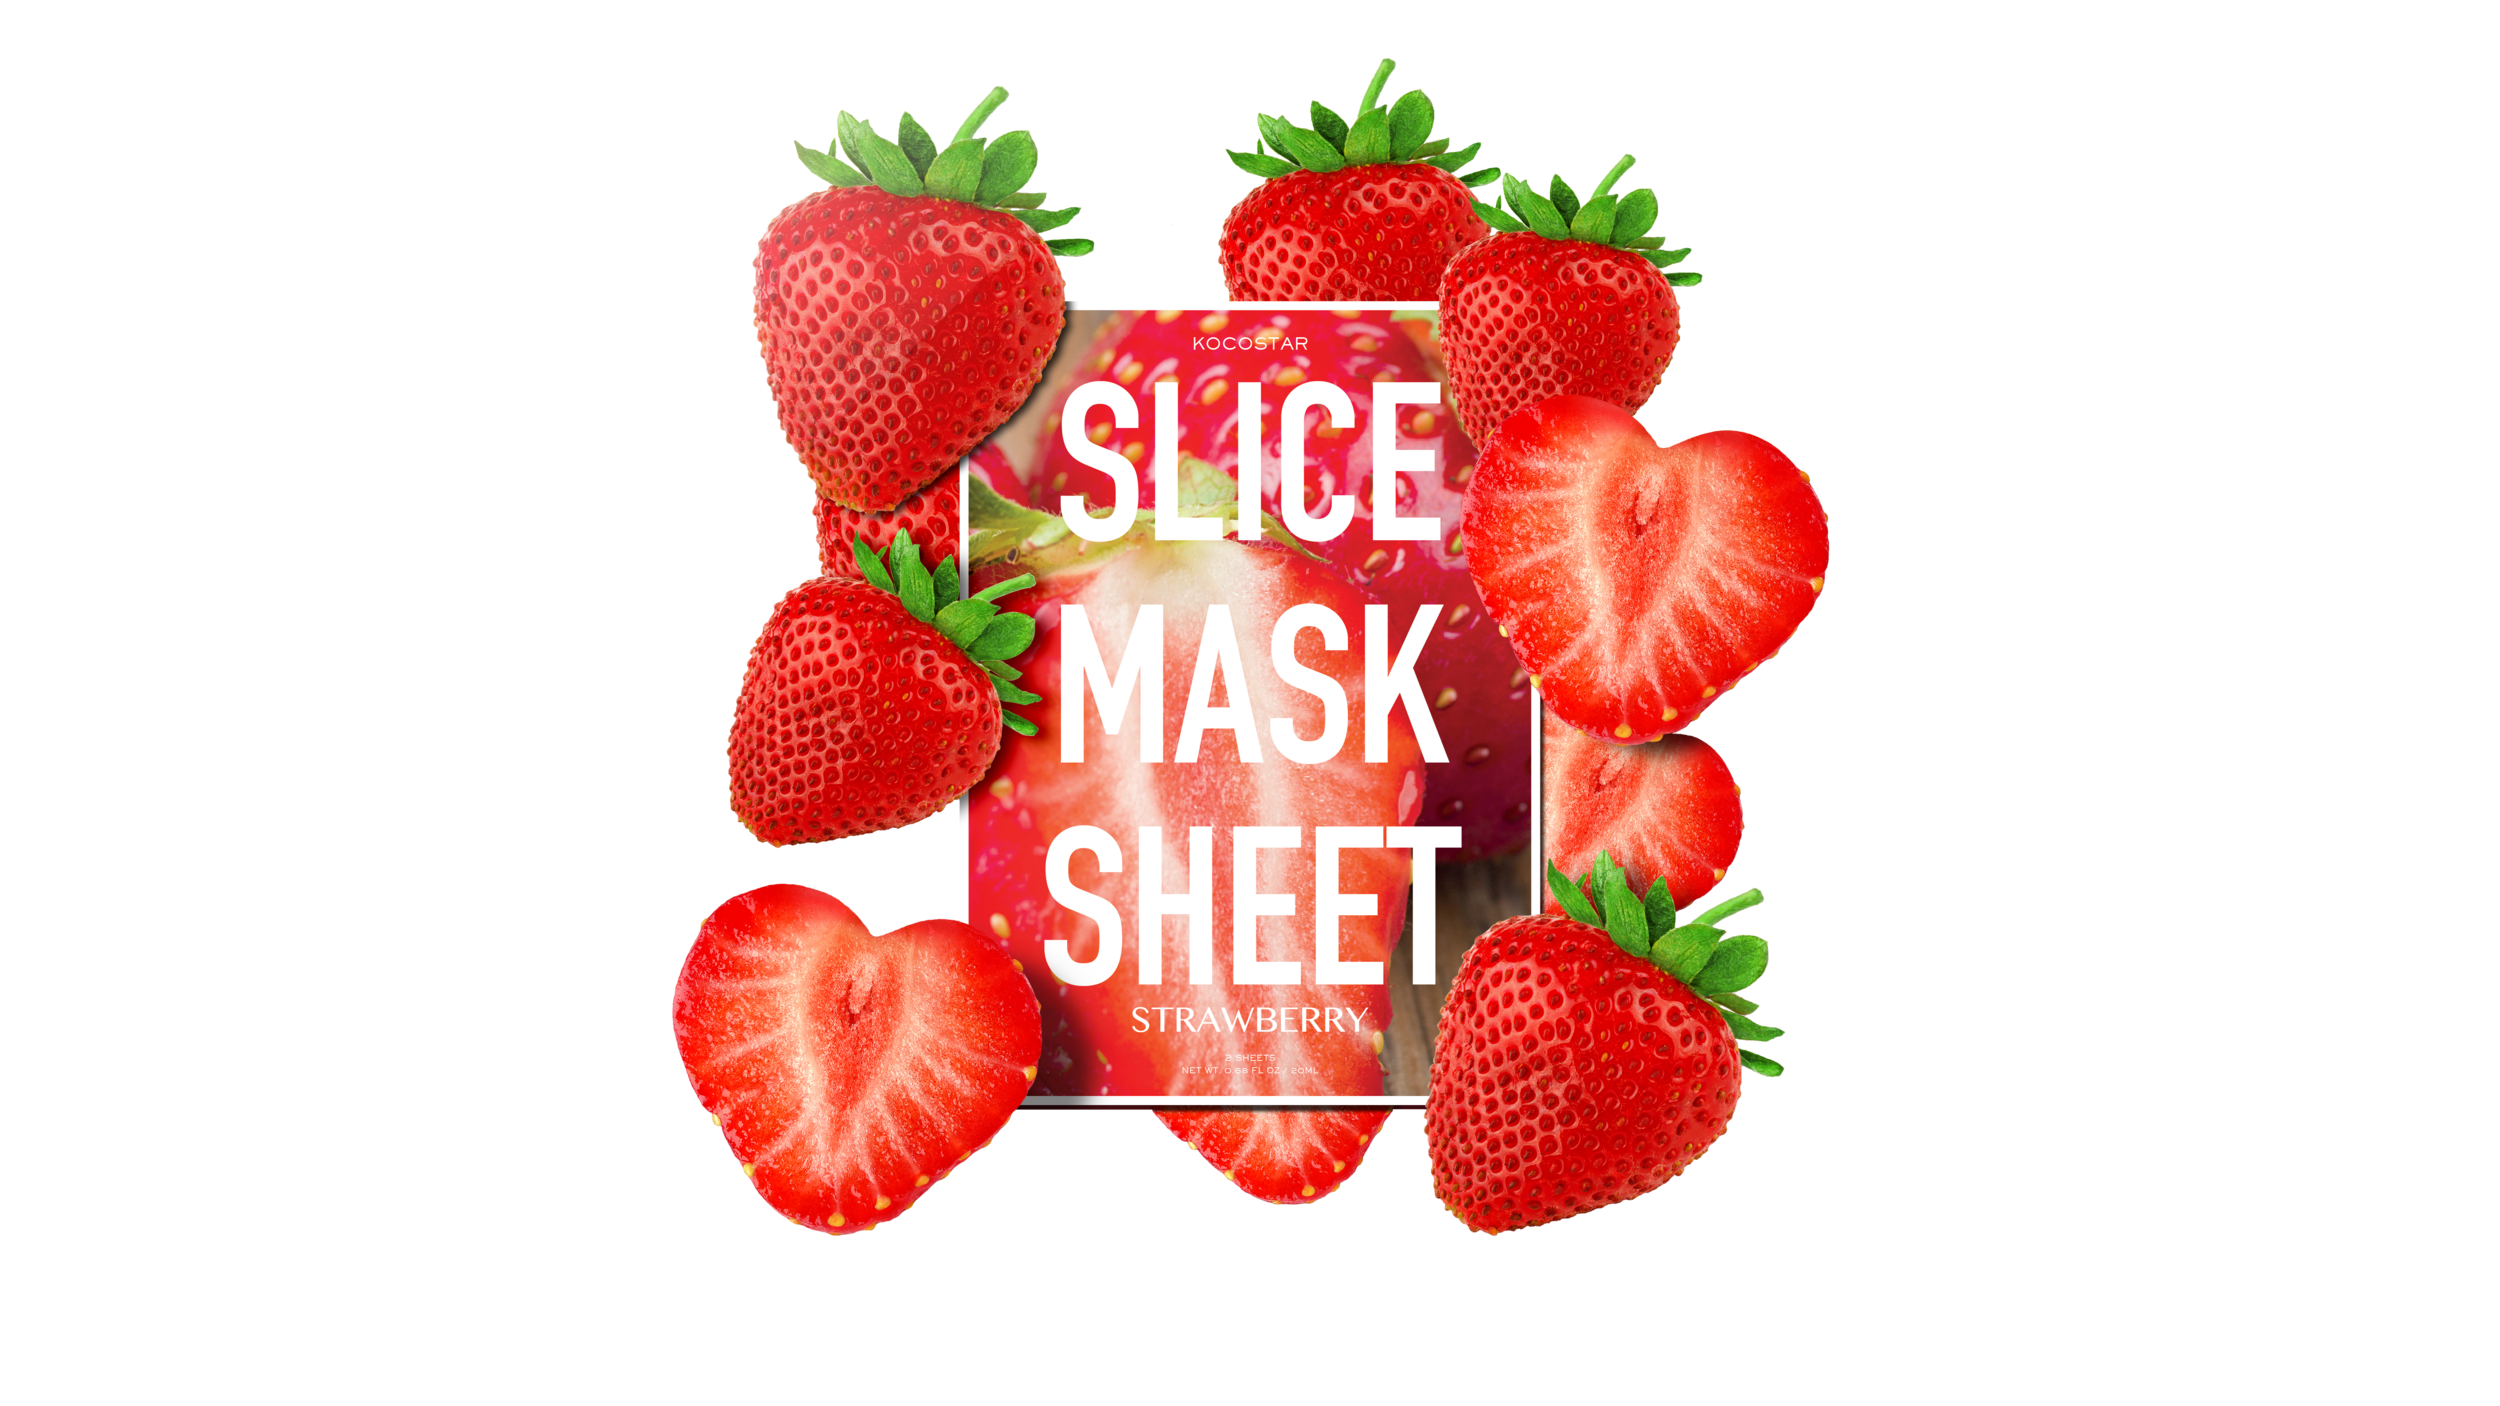 Slice mask sheet surrounded by slices of strawberries